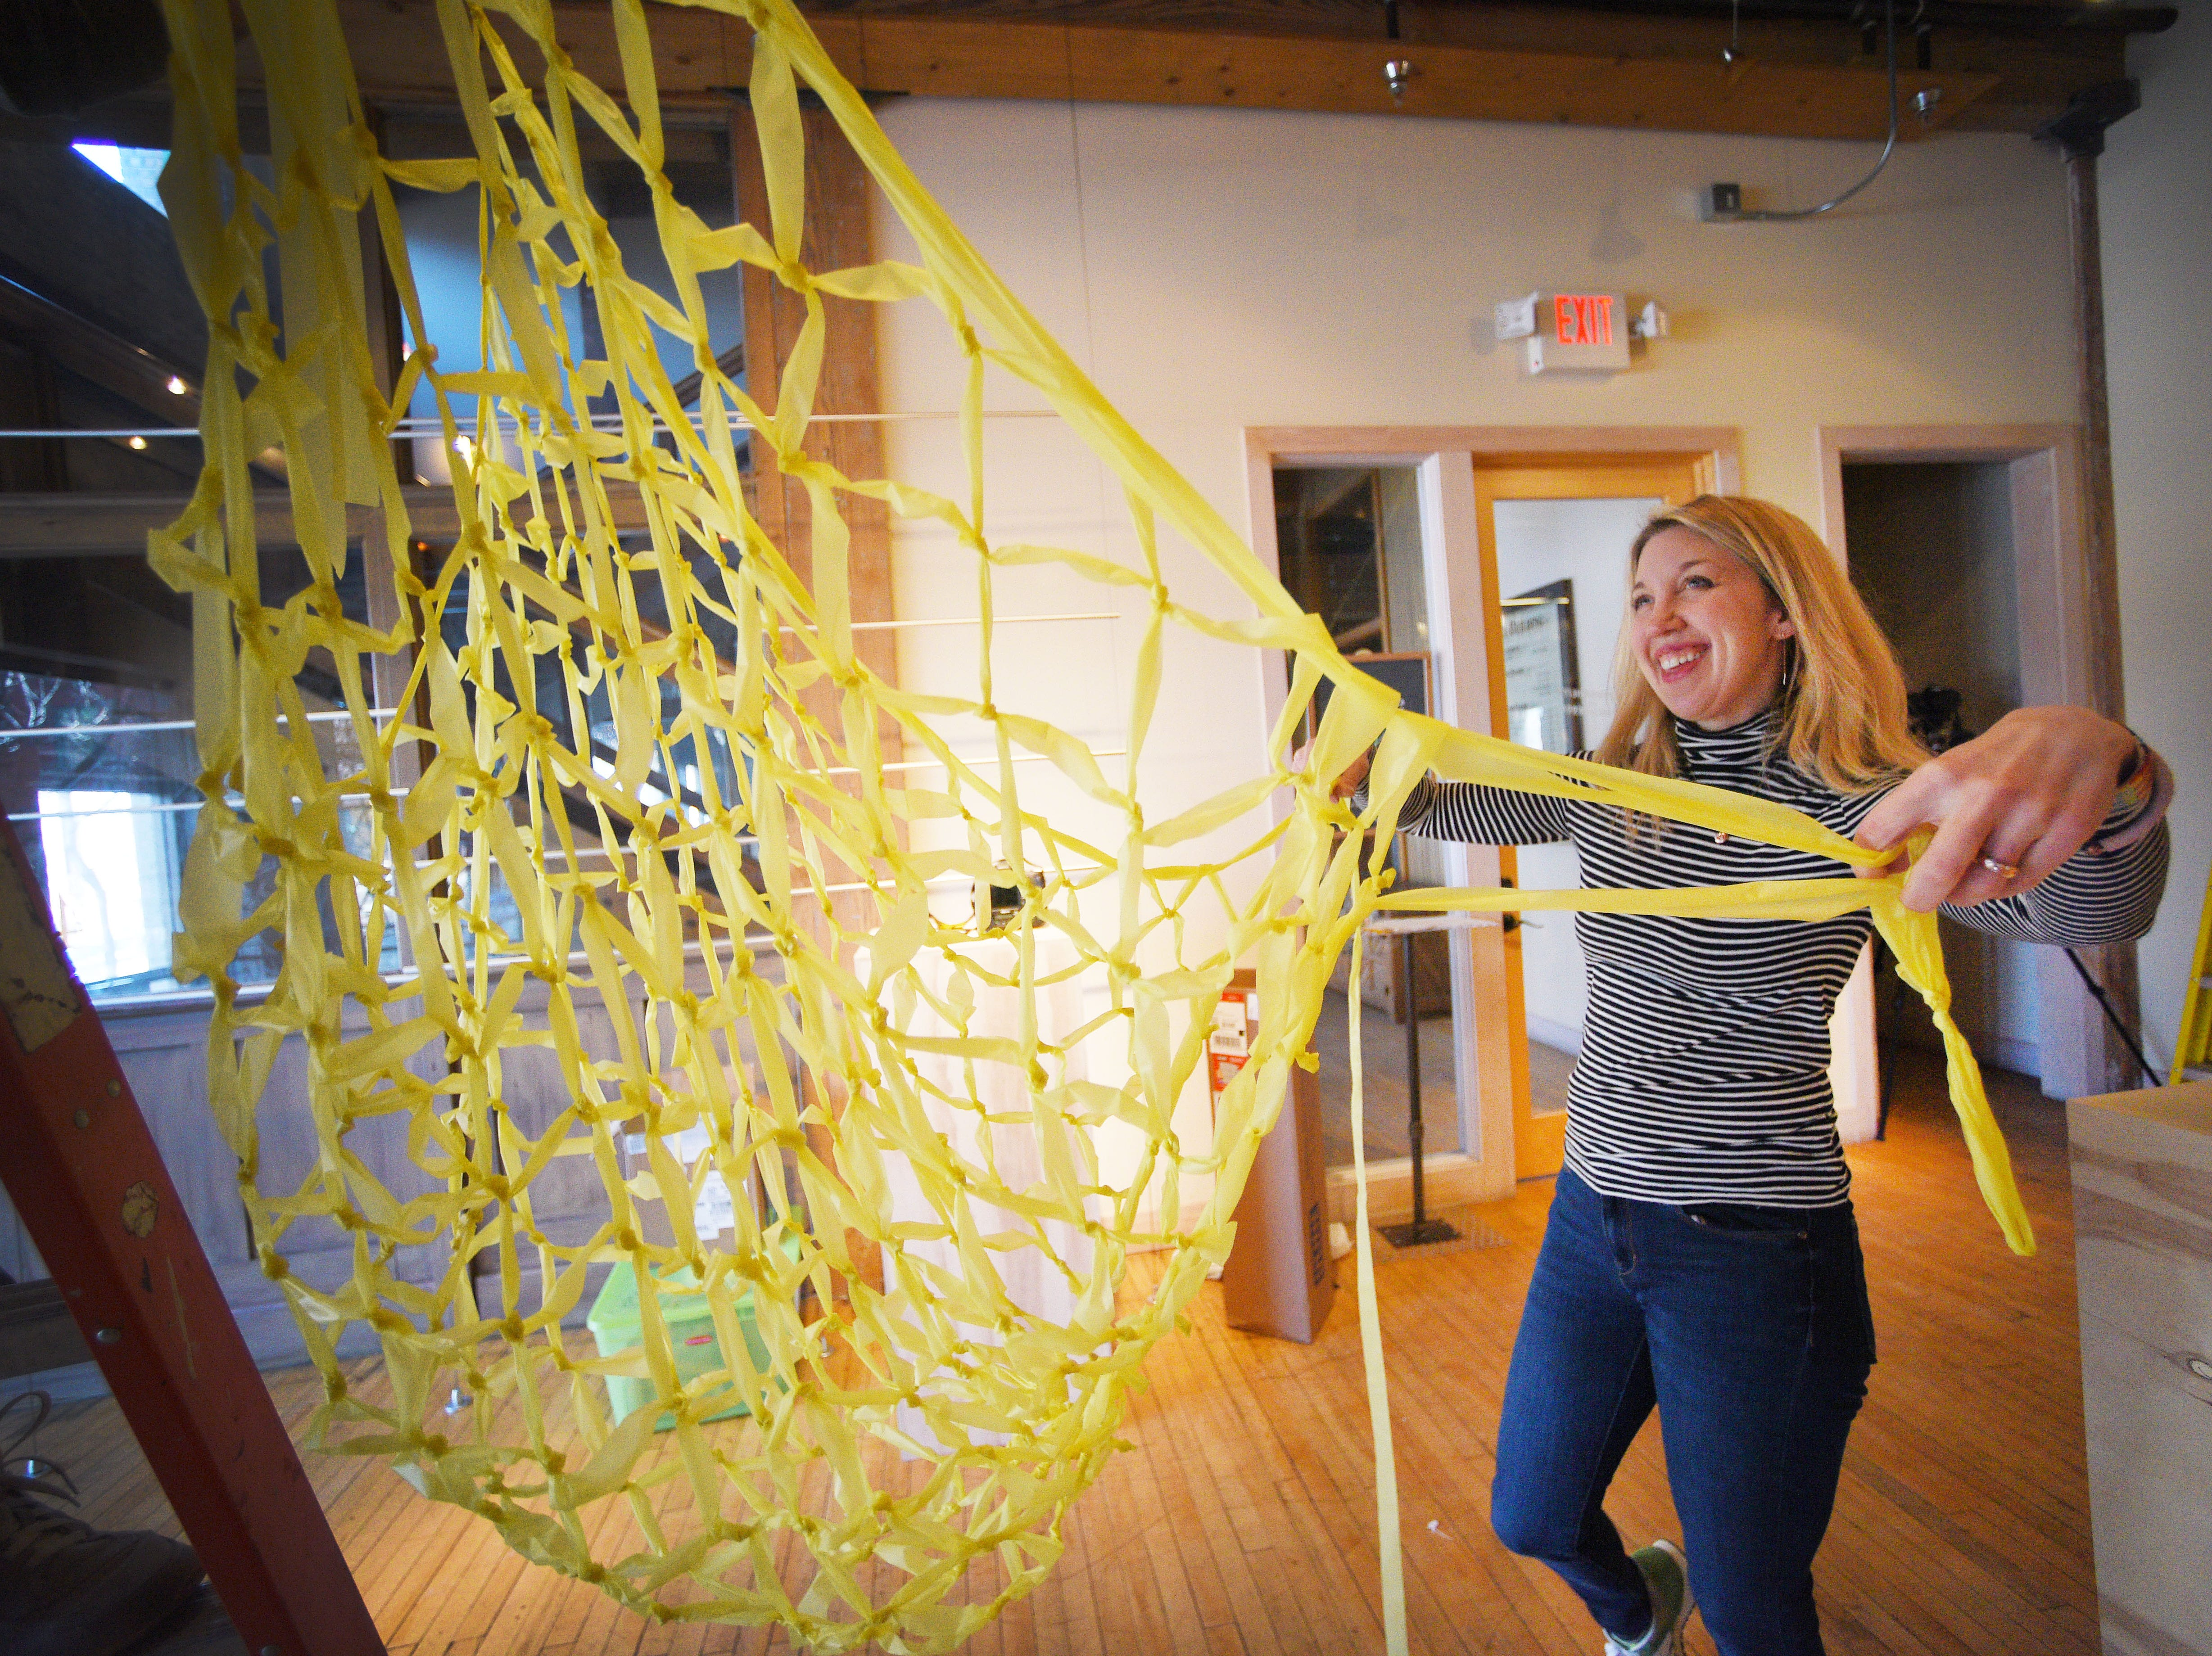 Gallery director Liz Heeren helps working artist and professor Jeff Ballard set up his art installations for the upcoming Ipso gallery, Manualtronic, Saturday, Feb. 2, at Fresh Produce. The gallery is open Friday, Feb. 8, from 6 to 8 p.m. and will be up until the last Friday of March.